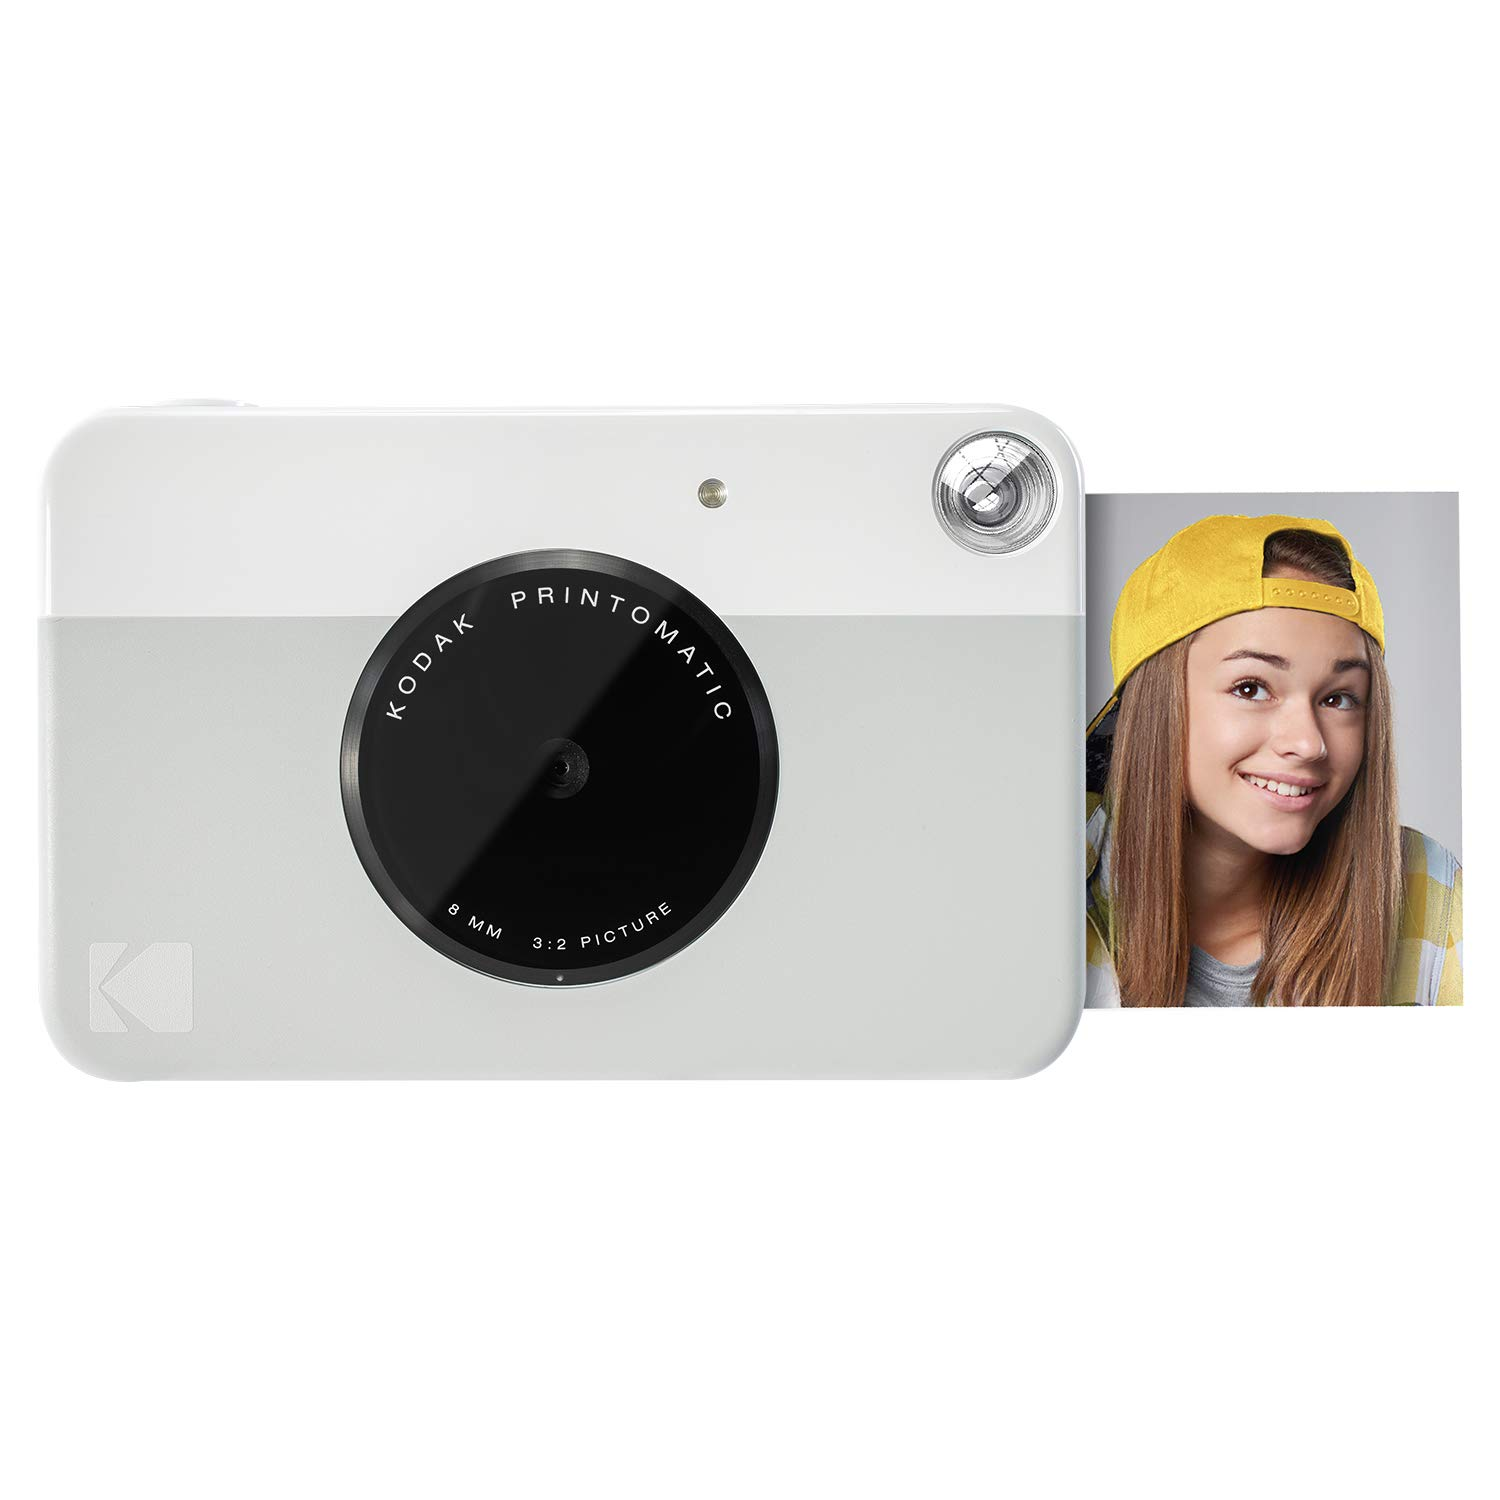 Kodak PRINTOMATIC Digital Instant Print Camera (Grey), Full